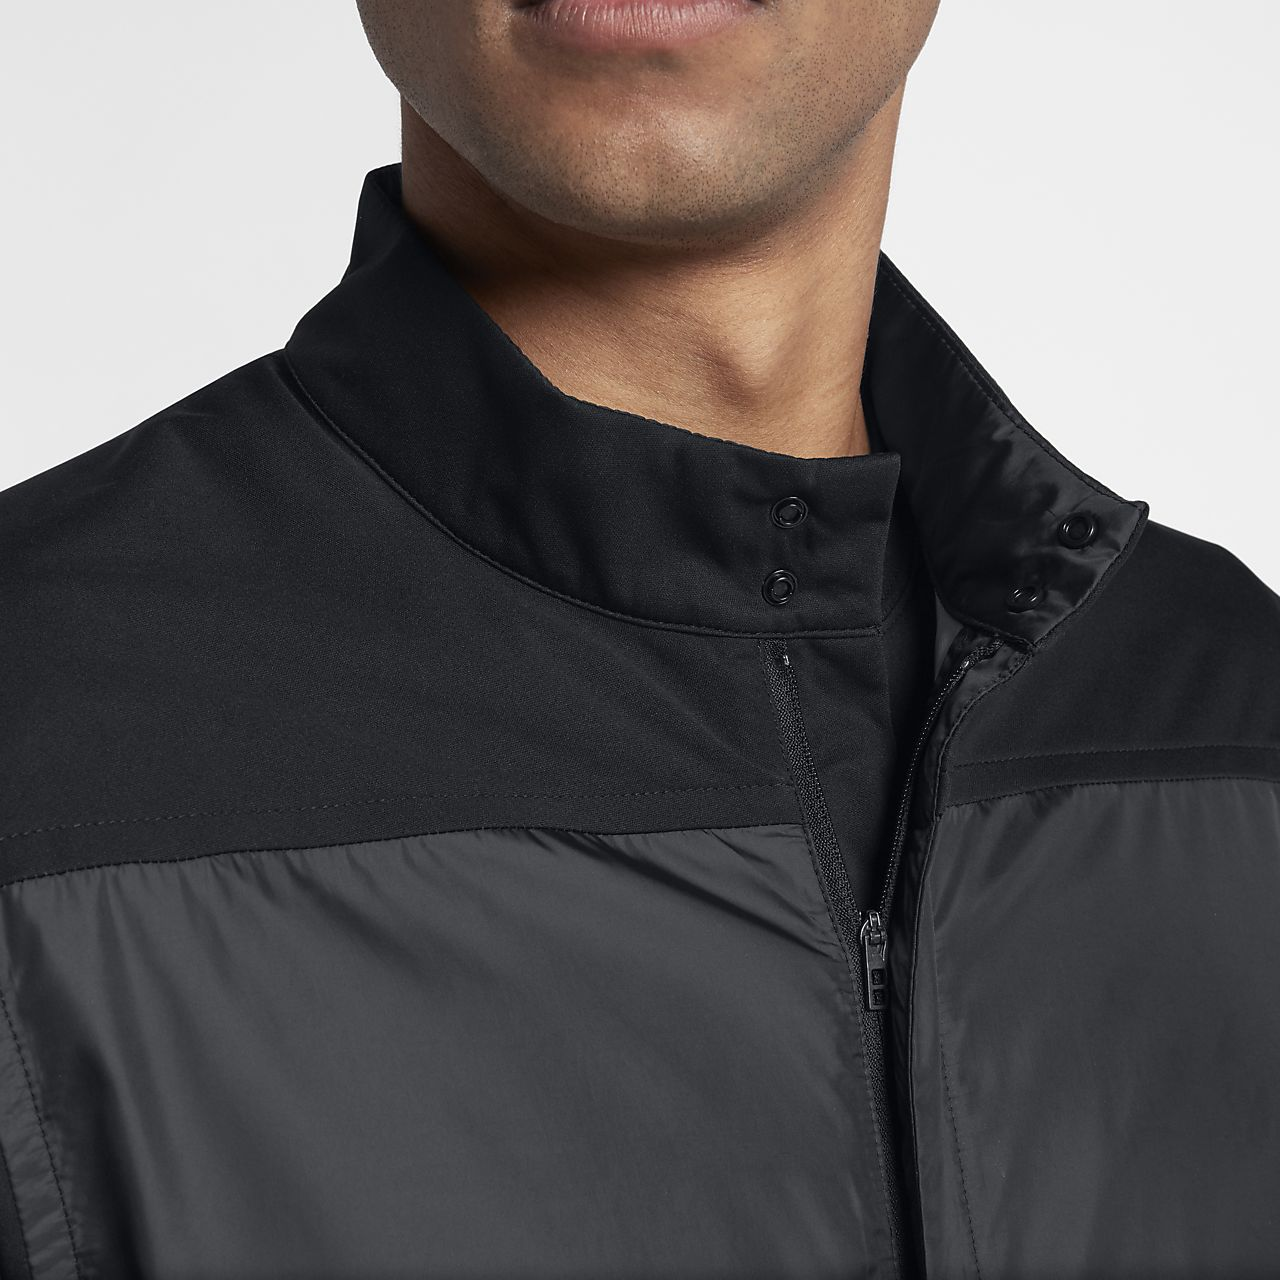 bb346cce49a9 Nike Shield Men s Full-Zip Golf Jacket. Nike.com